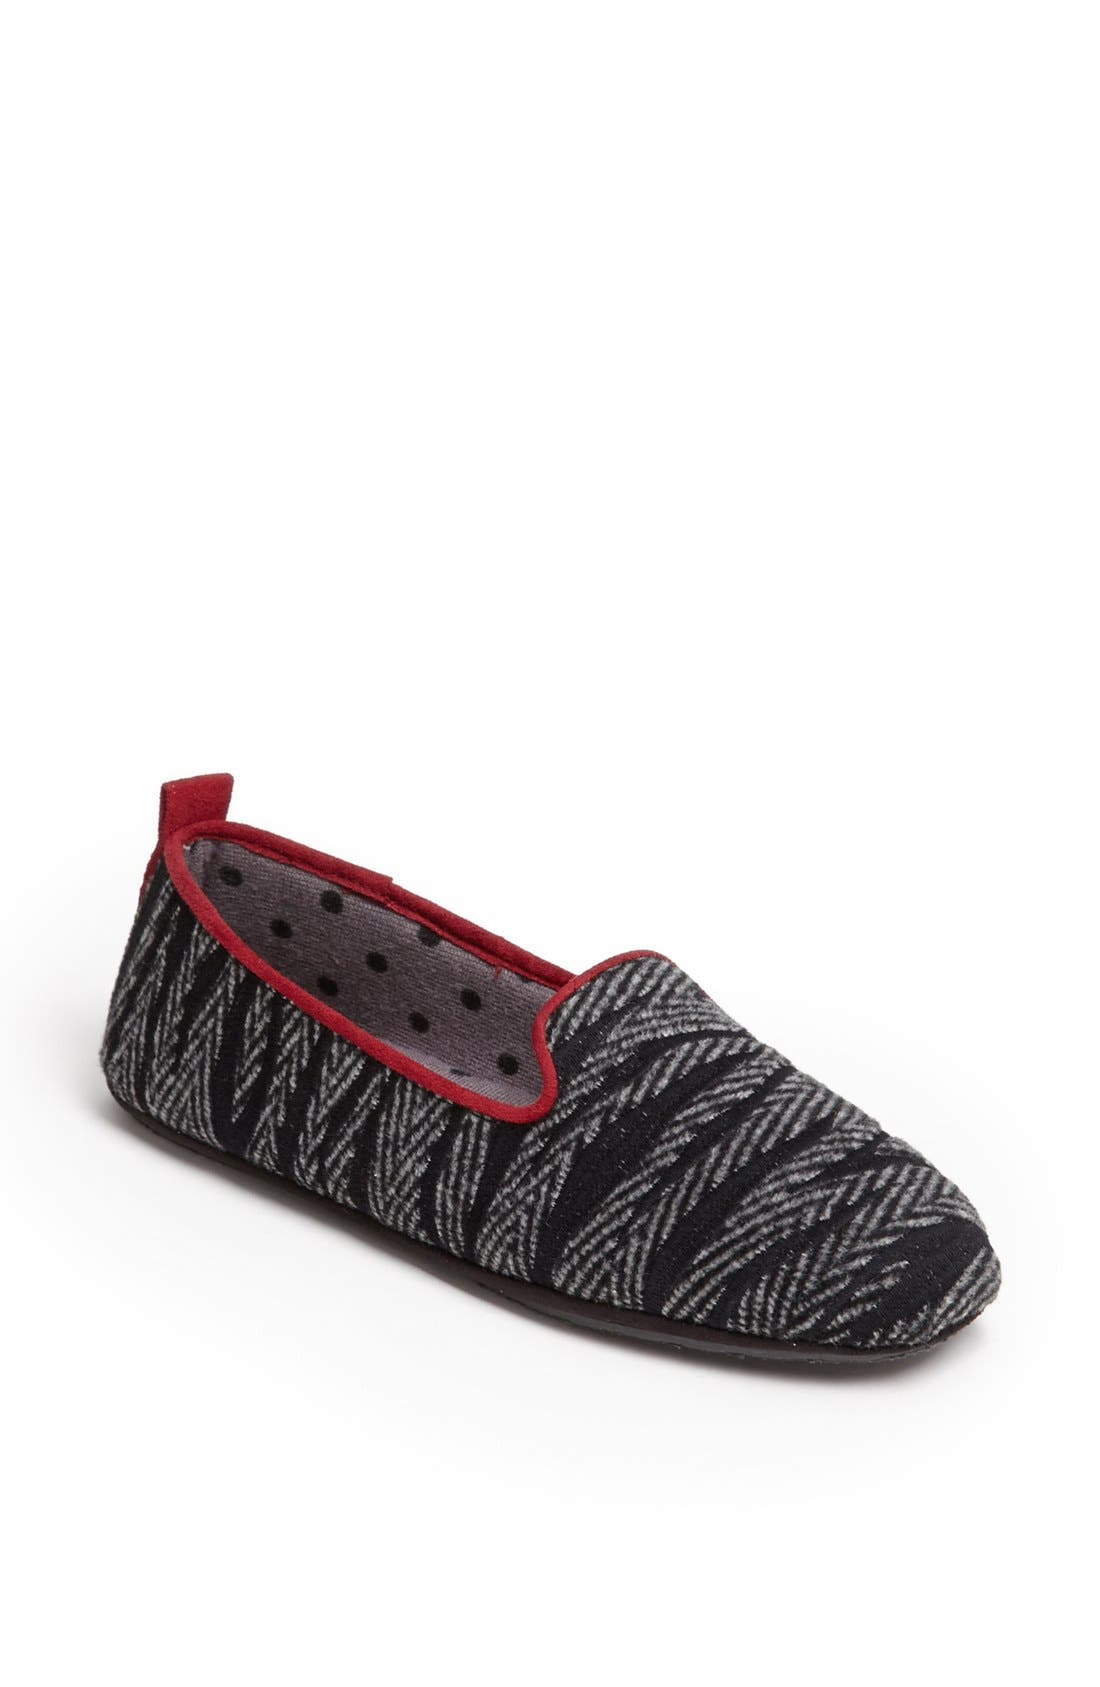 Alternate Image 1 Selected - Acorn 'Novella' Slipper (Online Only)